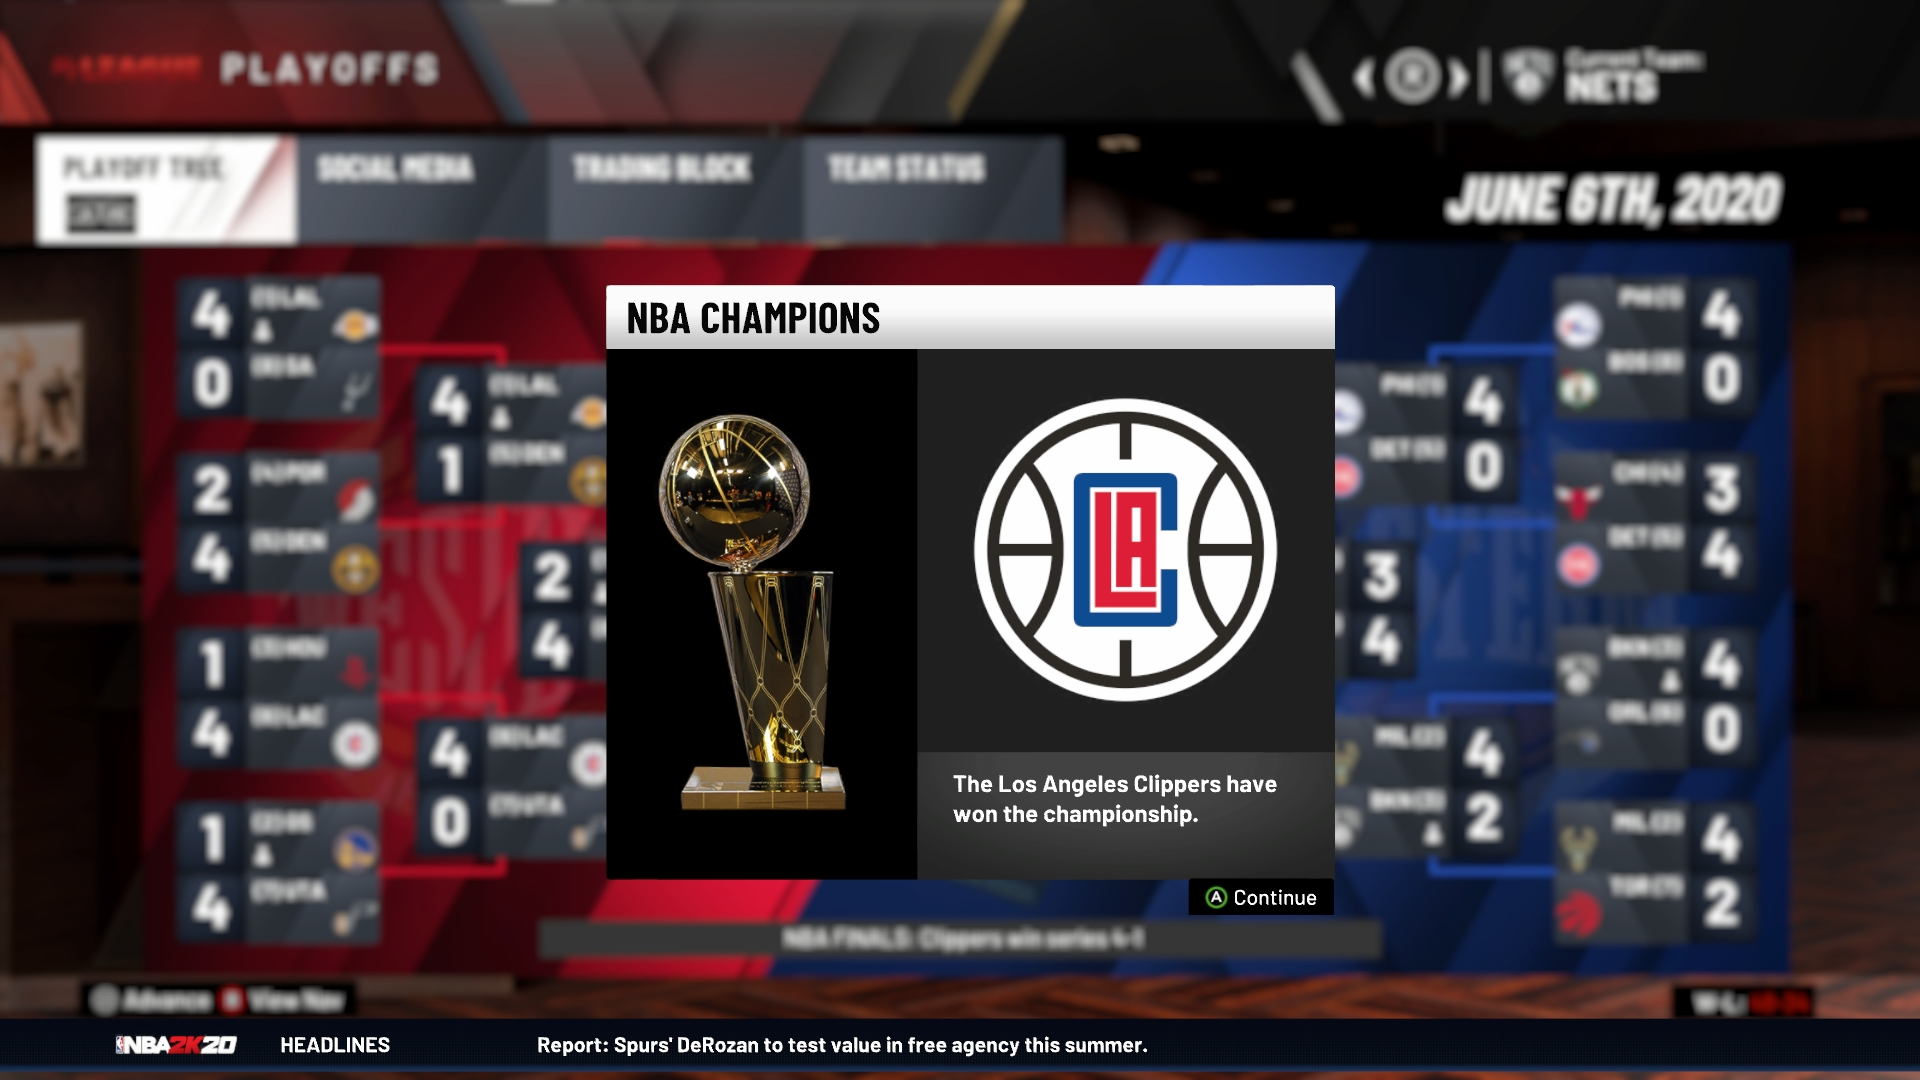 Nba Playoffs 2020 Schedule.Here S How Nba 2k20 Predicts The 2019 20 Season Will Go Down